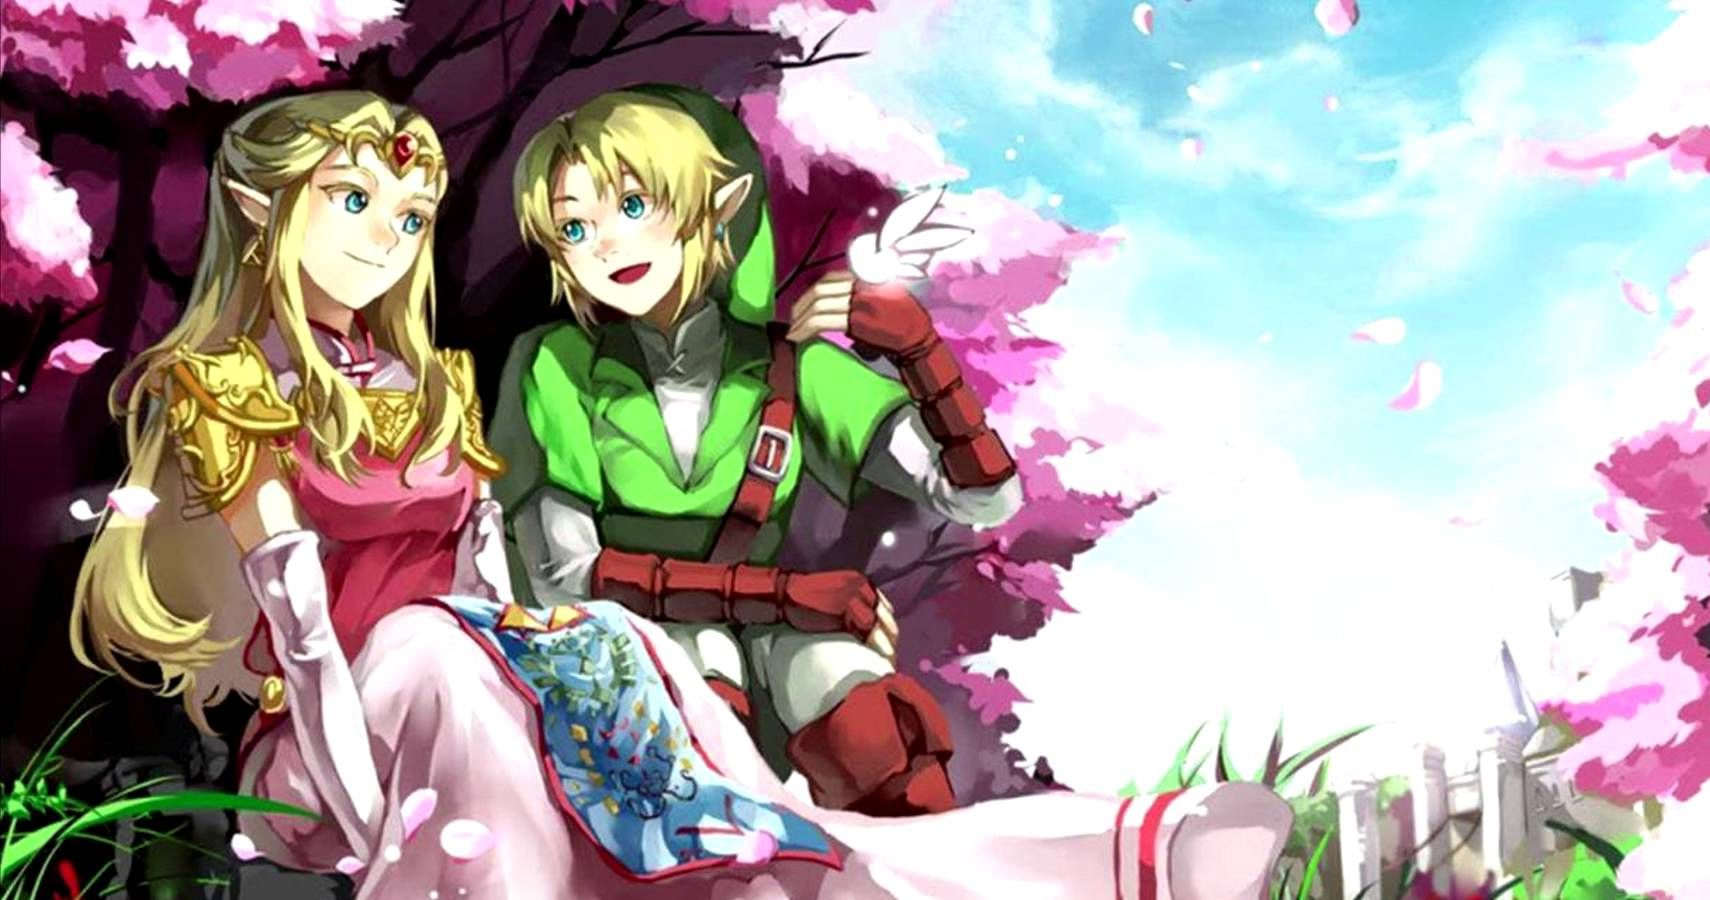 Do link and zelda ever hook up